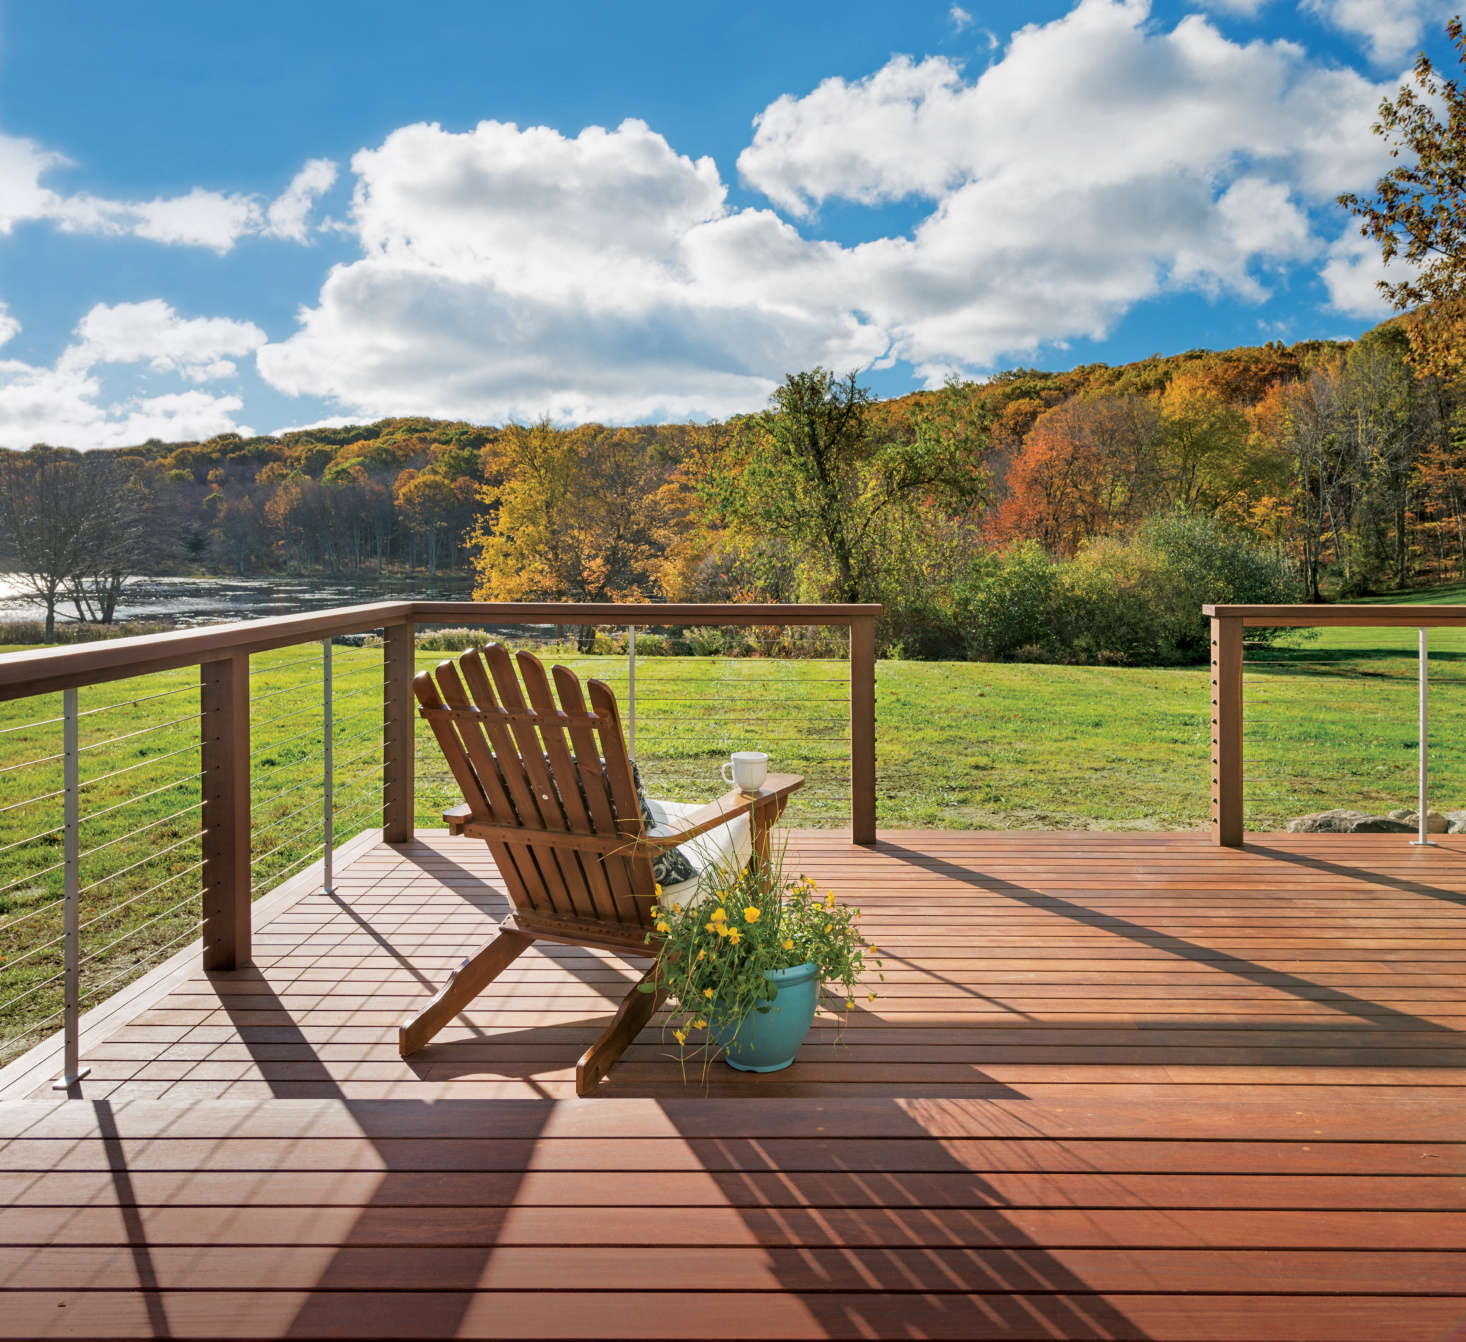 Luxurious Unobstructed Cable Railing Infills From Feeney Cable Rail Installation Feeney Cable Rail End Caps Feeney Cablerail Allows houzz 01 Feeney Cable Rail